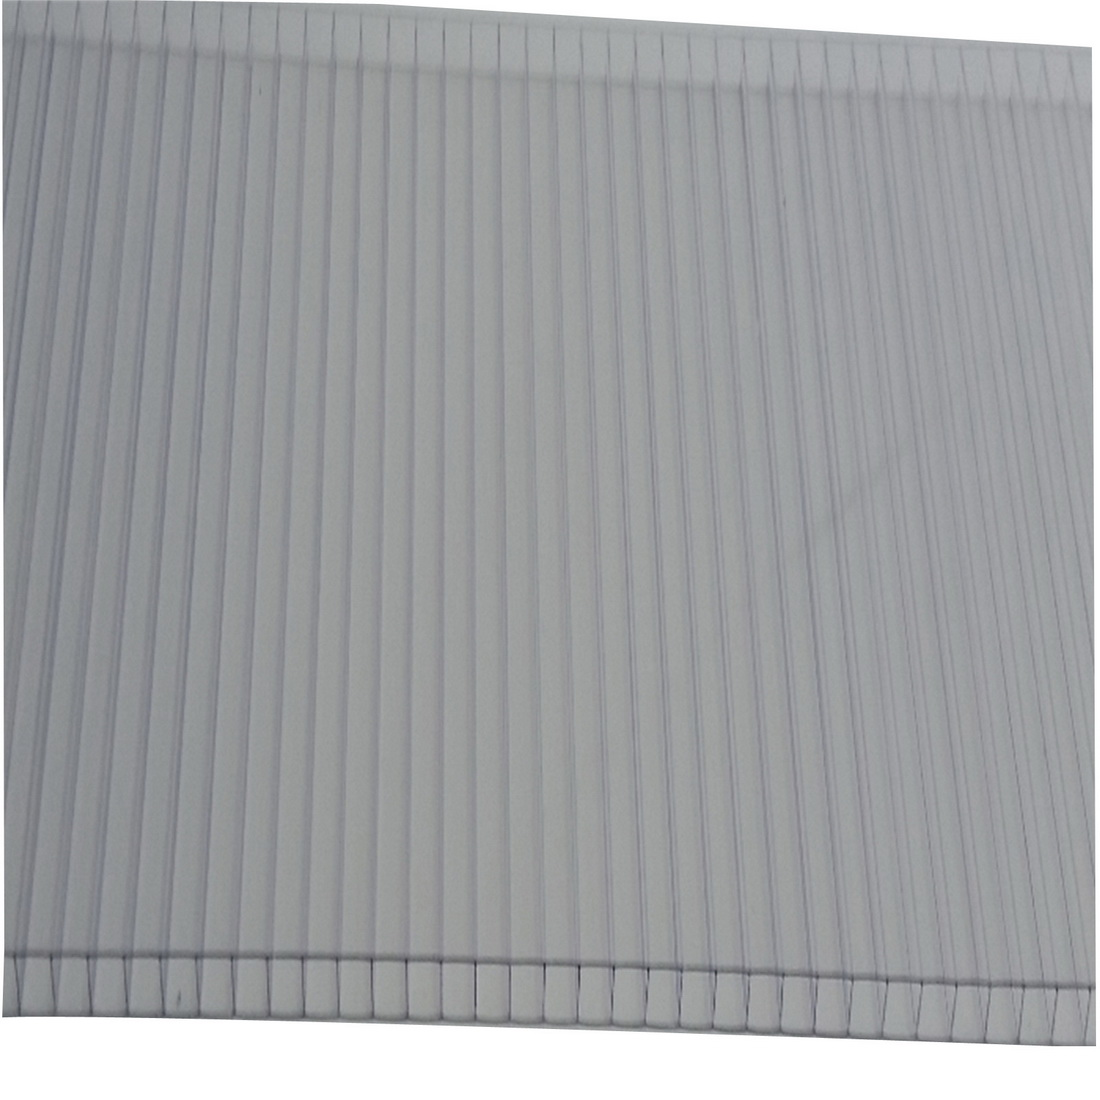 Twinwall Fluted Roofing 1800 x 1220 x 8mm Polycarbonate Clear 9418815042930